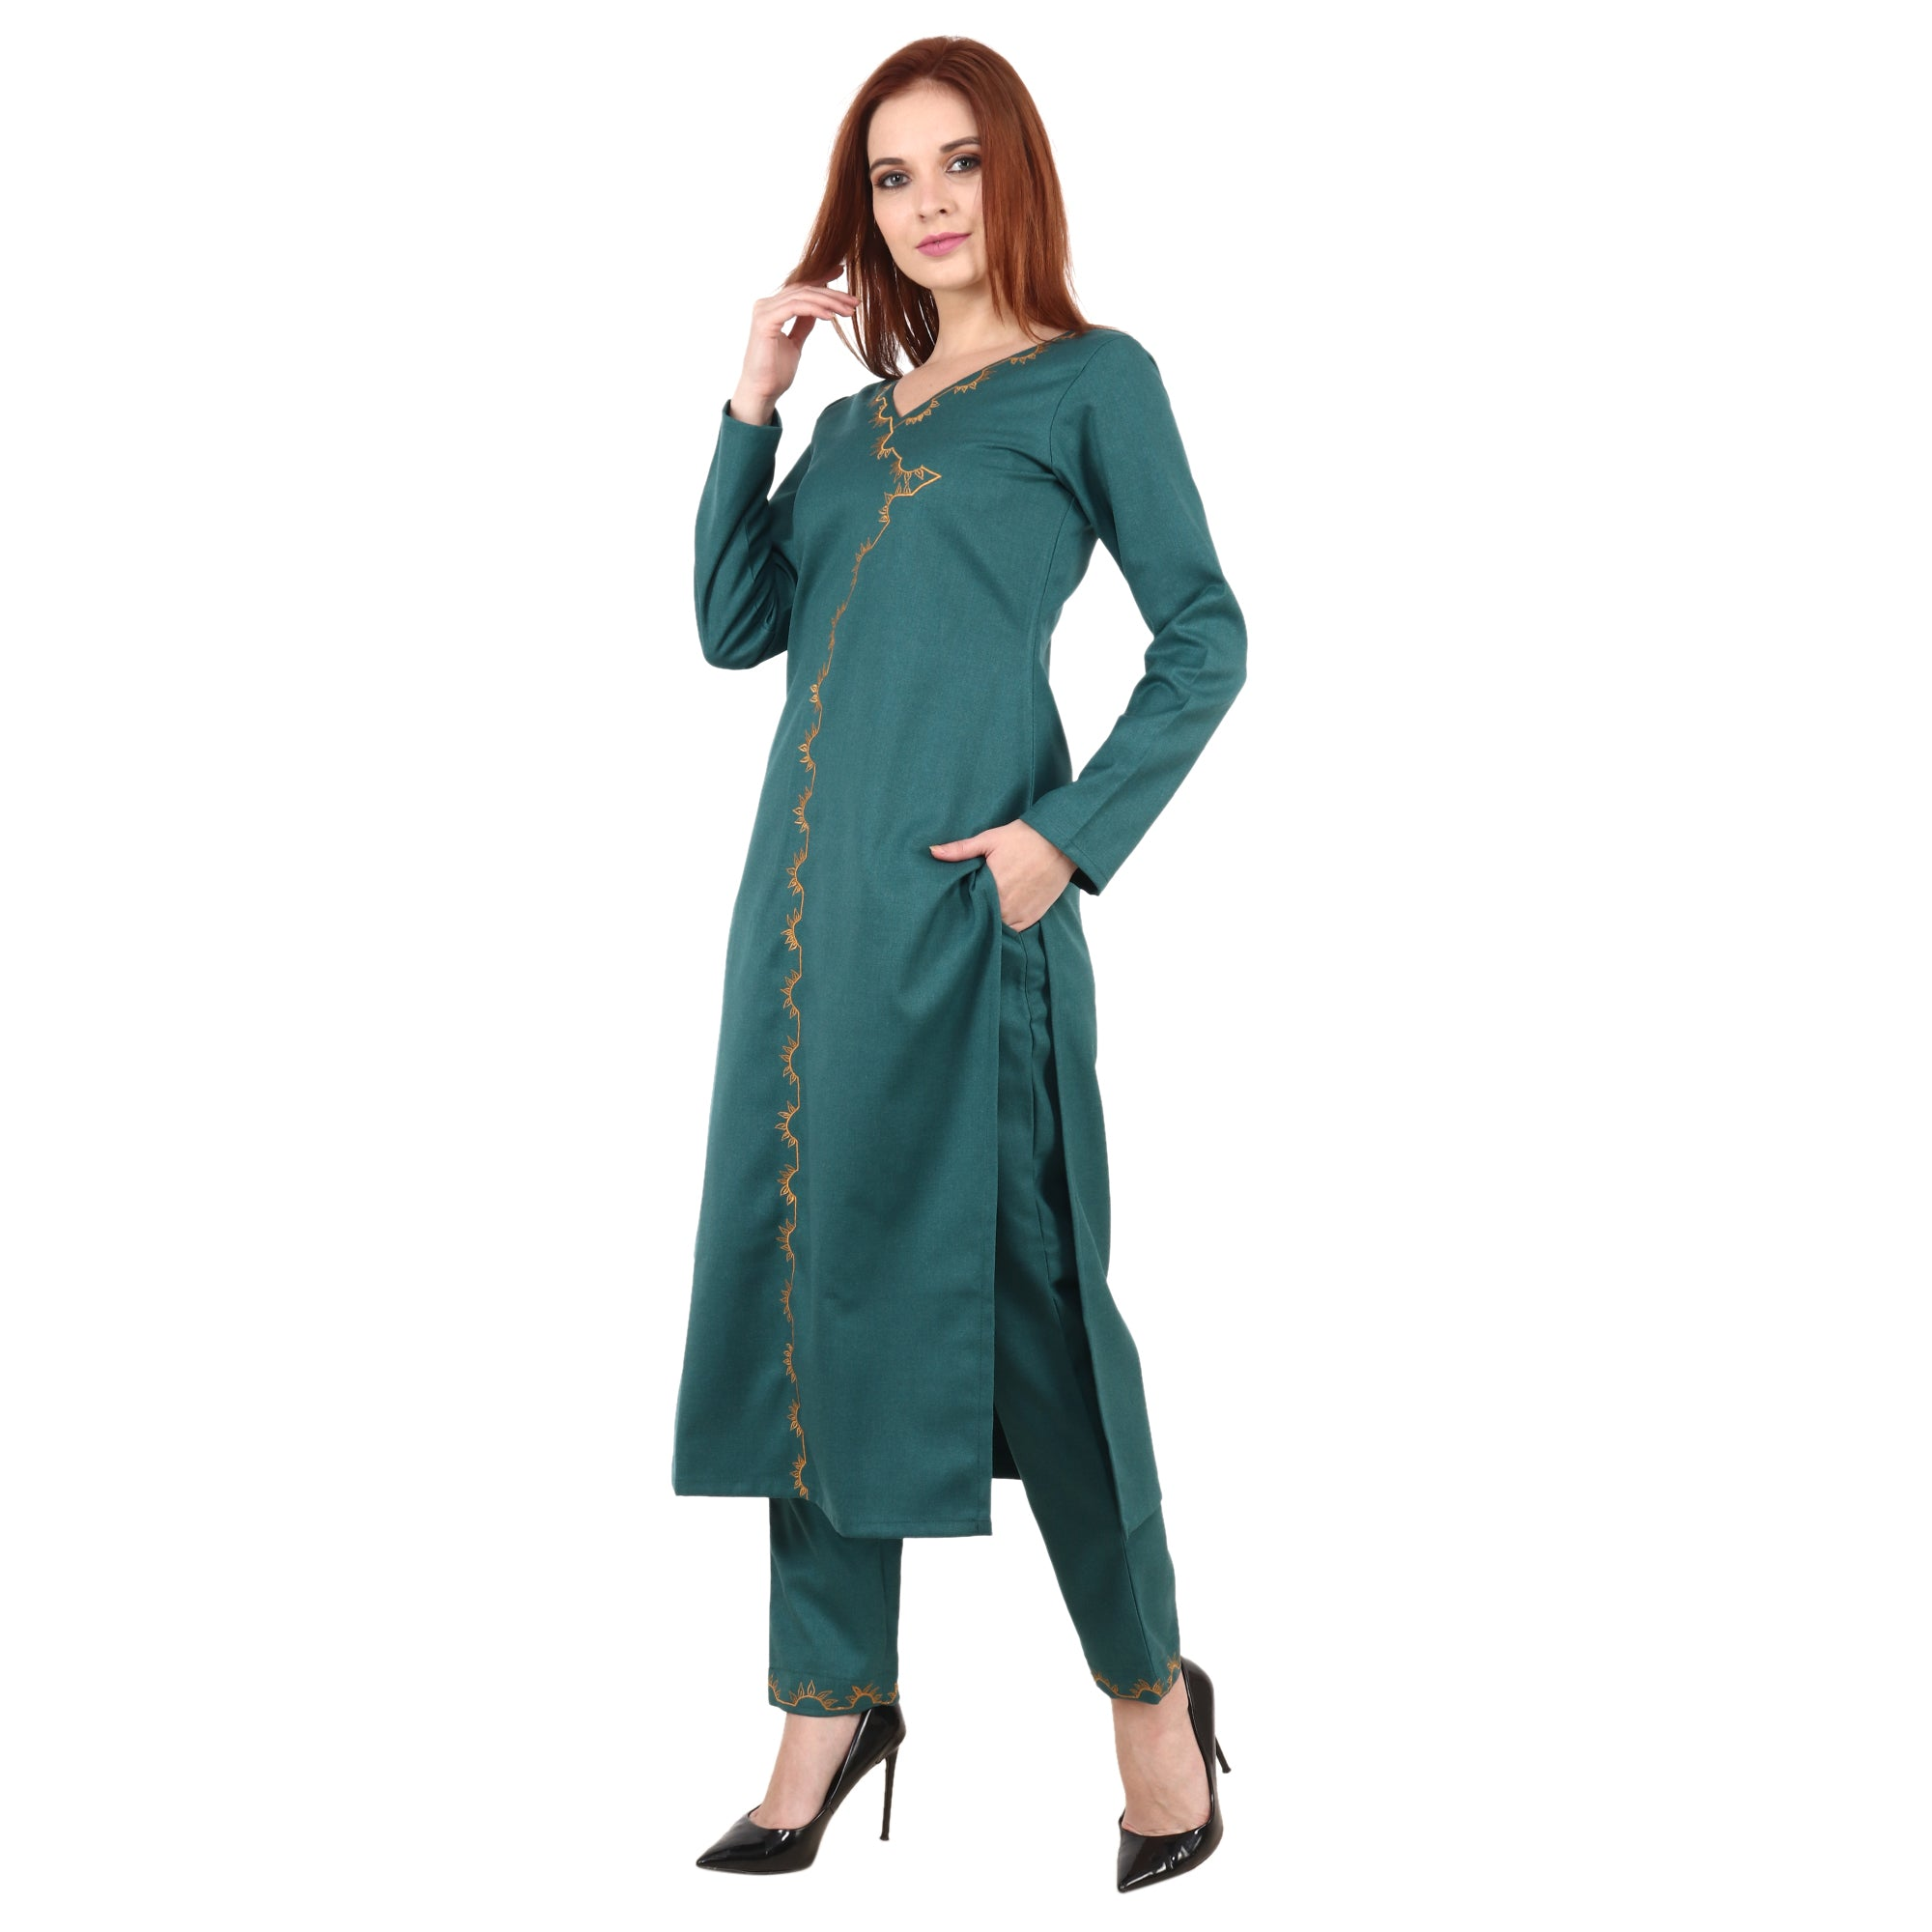 3/4 QUARTER SLEEVES, all size, all sizes, apella, best online store, COFFEE, Kurta Set, kurta suits, MANDARIAN, palazzo suits, plus size, pluz size, reasonable price, shop online, skin friend